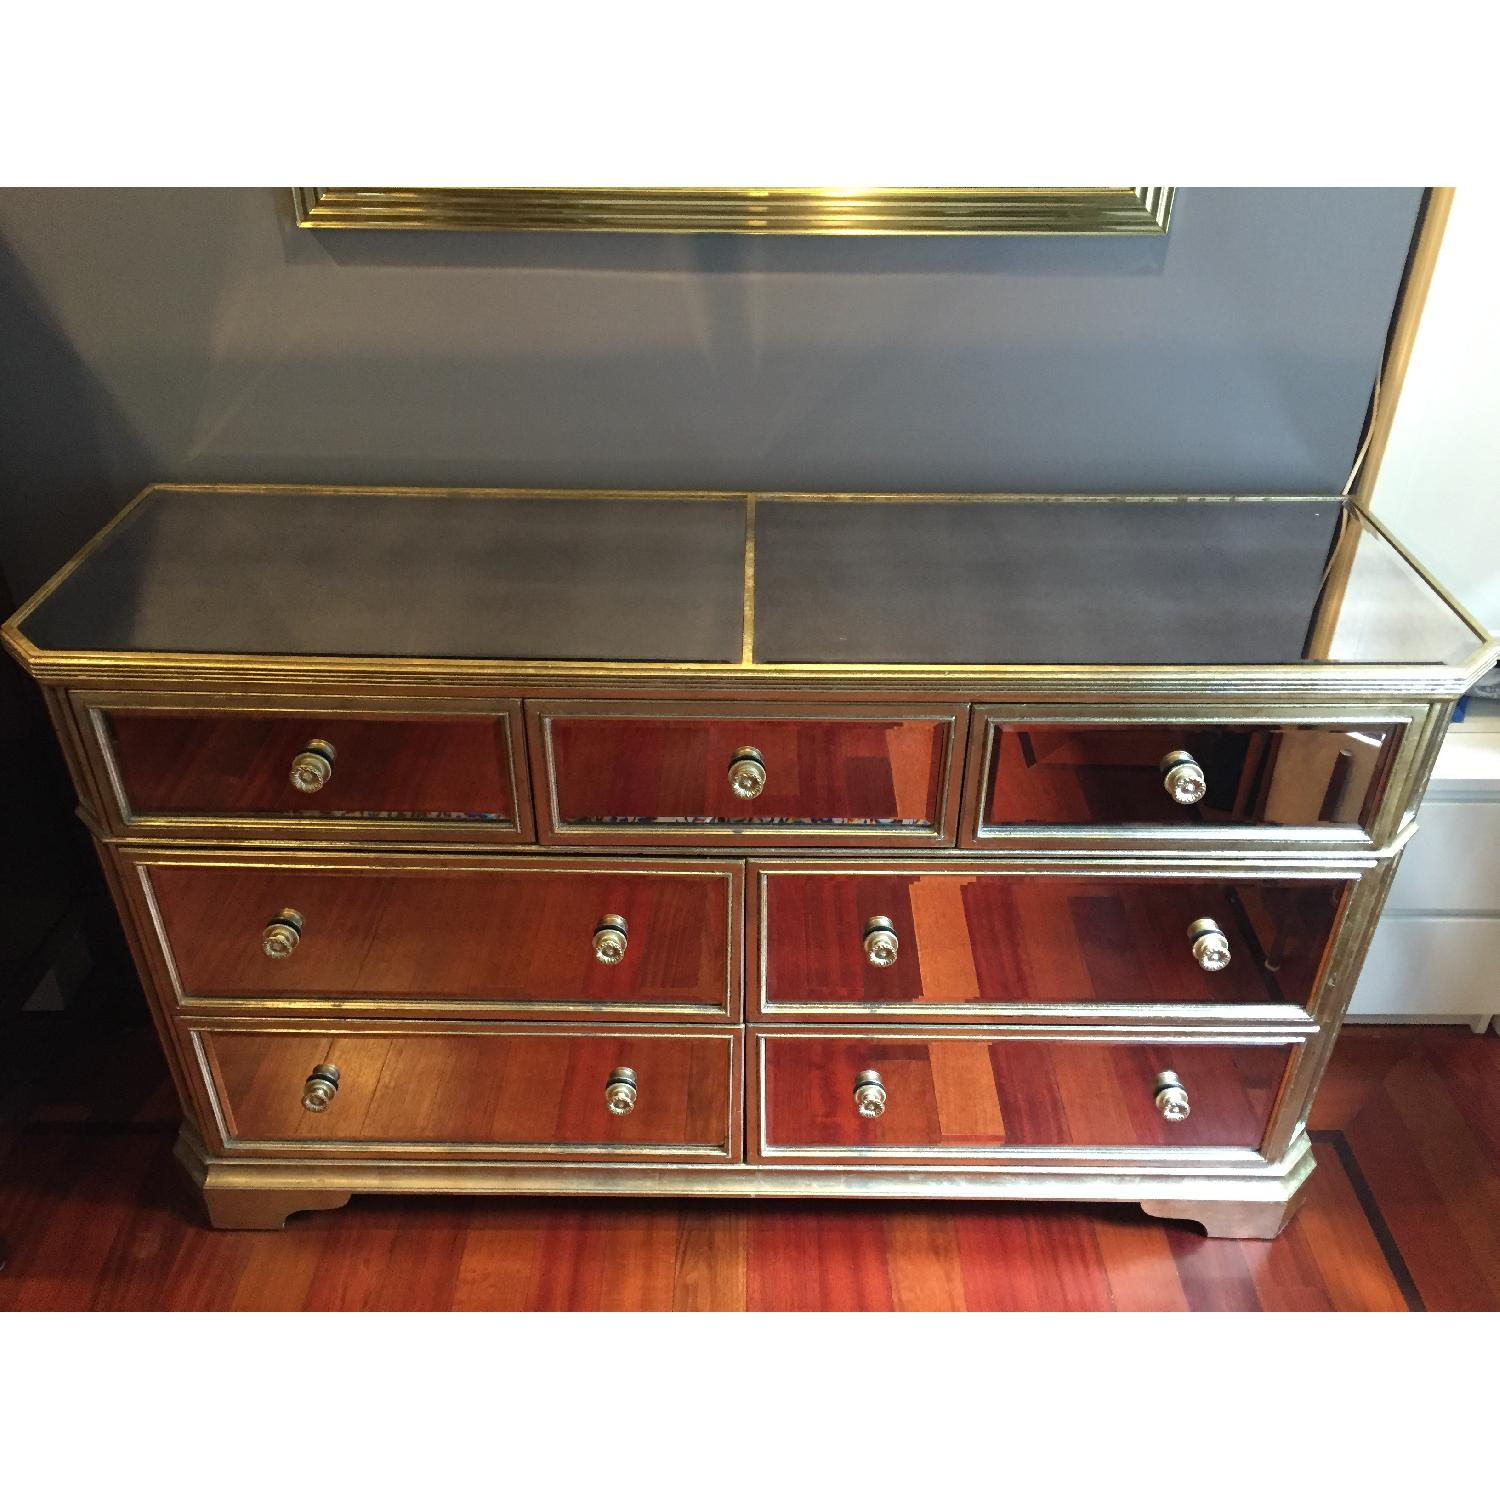 Z Gallerie Borghese Mirrored 7 Drawer Chest - image-4